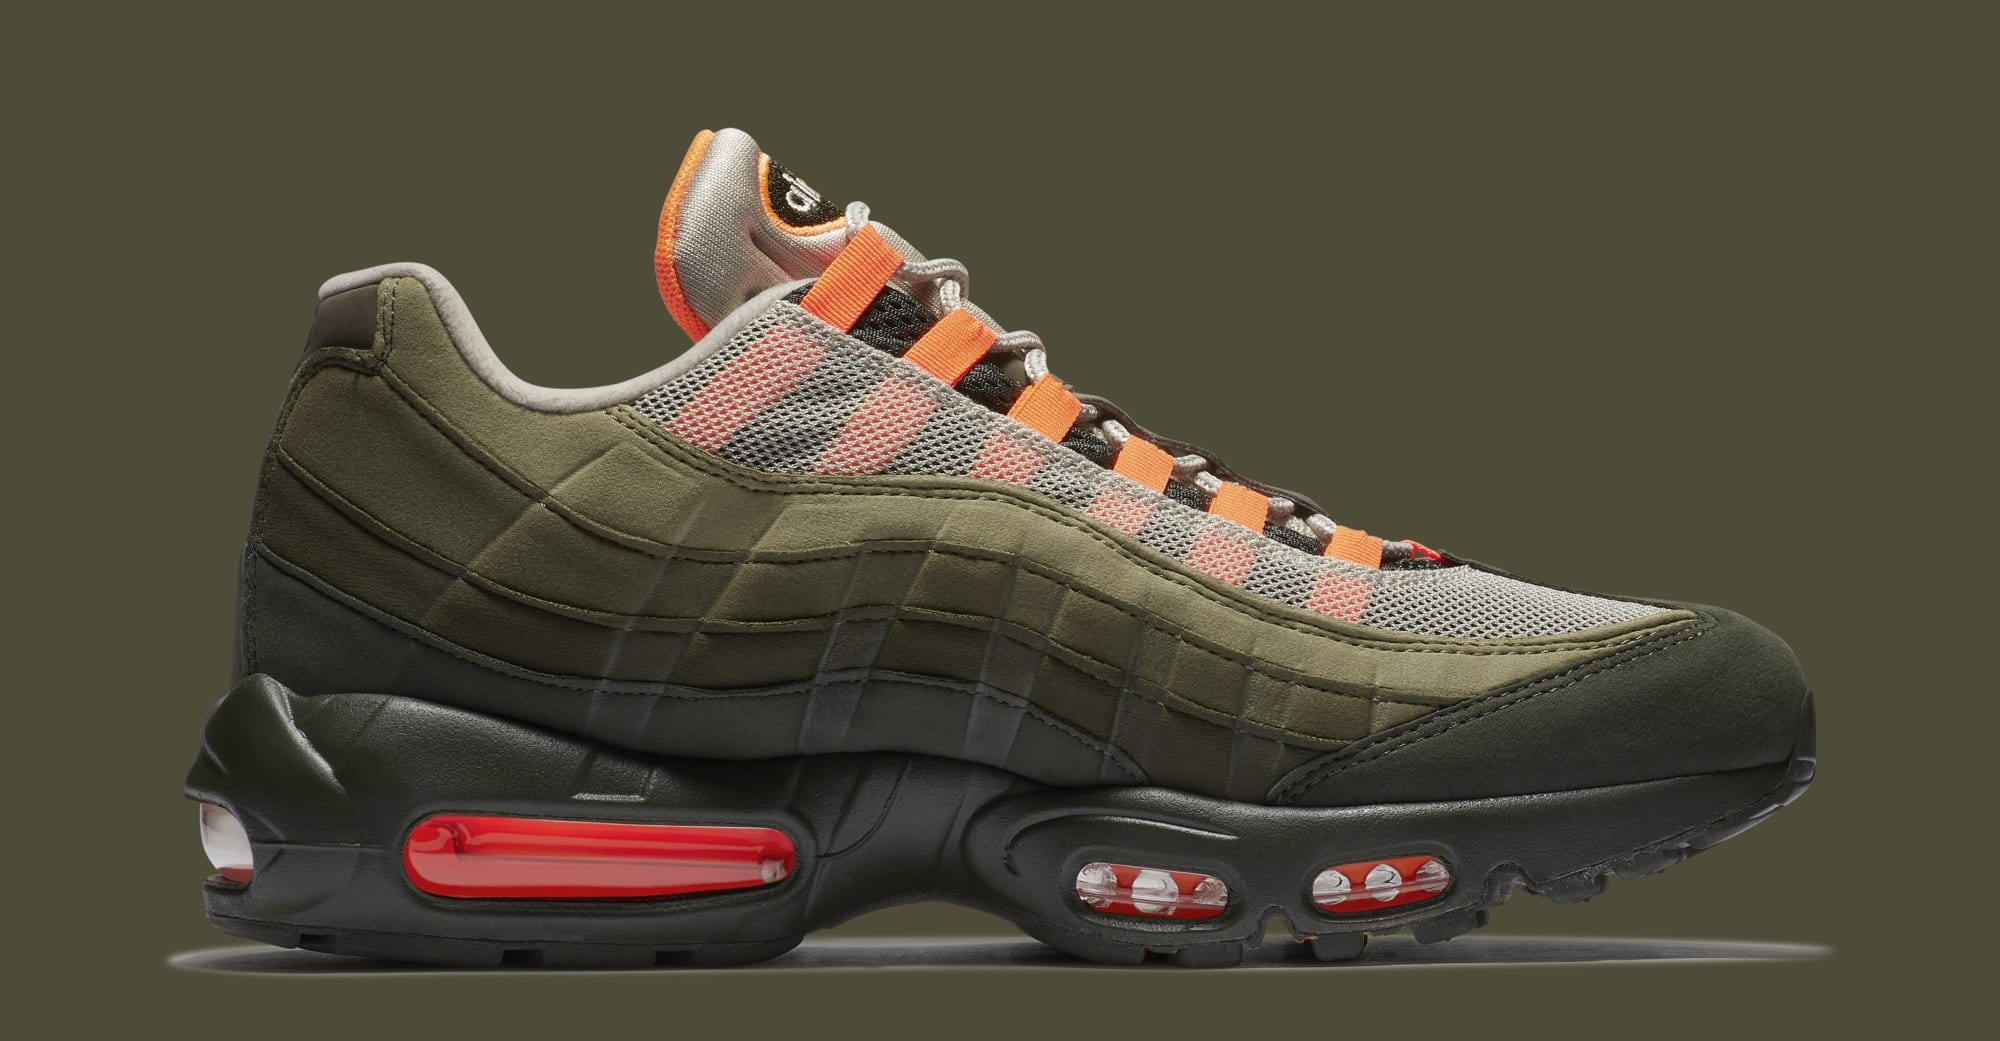 Air Max 95 Green White And Orange   The Centre for Contemporary History 2eadc6ac8b86